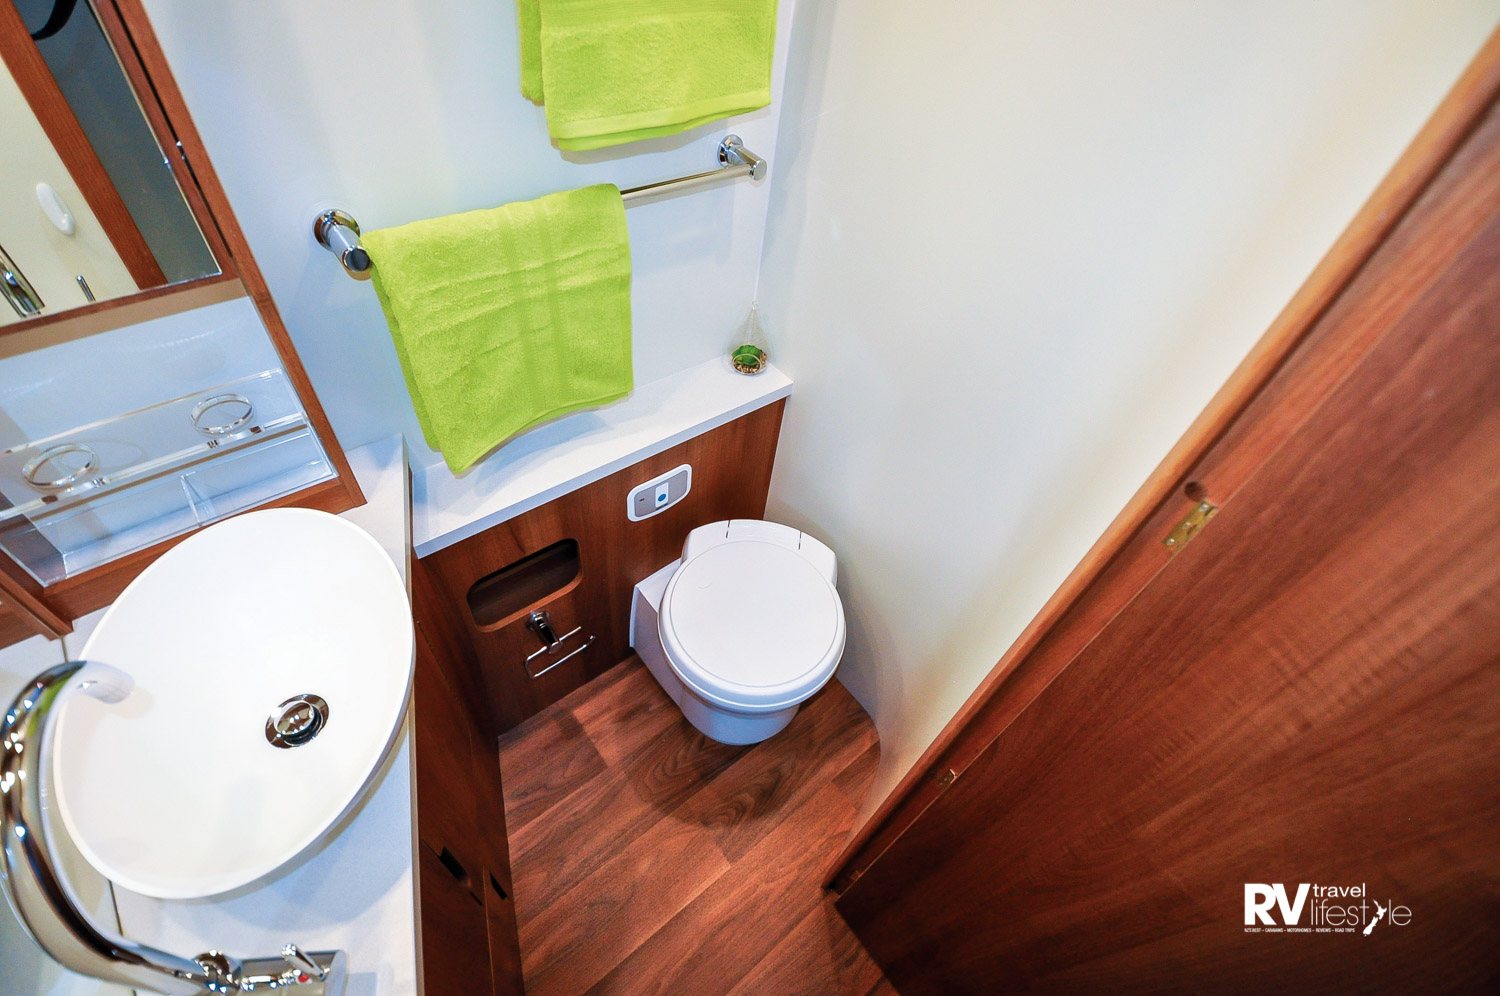 Opposite the shower box is the separate en suite with swivel cassette toilet, vanity unit with quality fittings, plenty of storage options and a large mirror